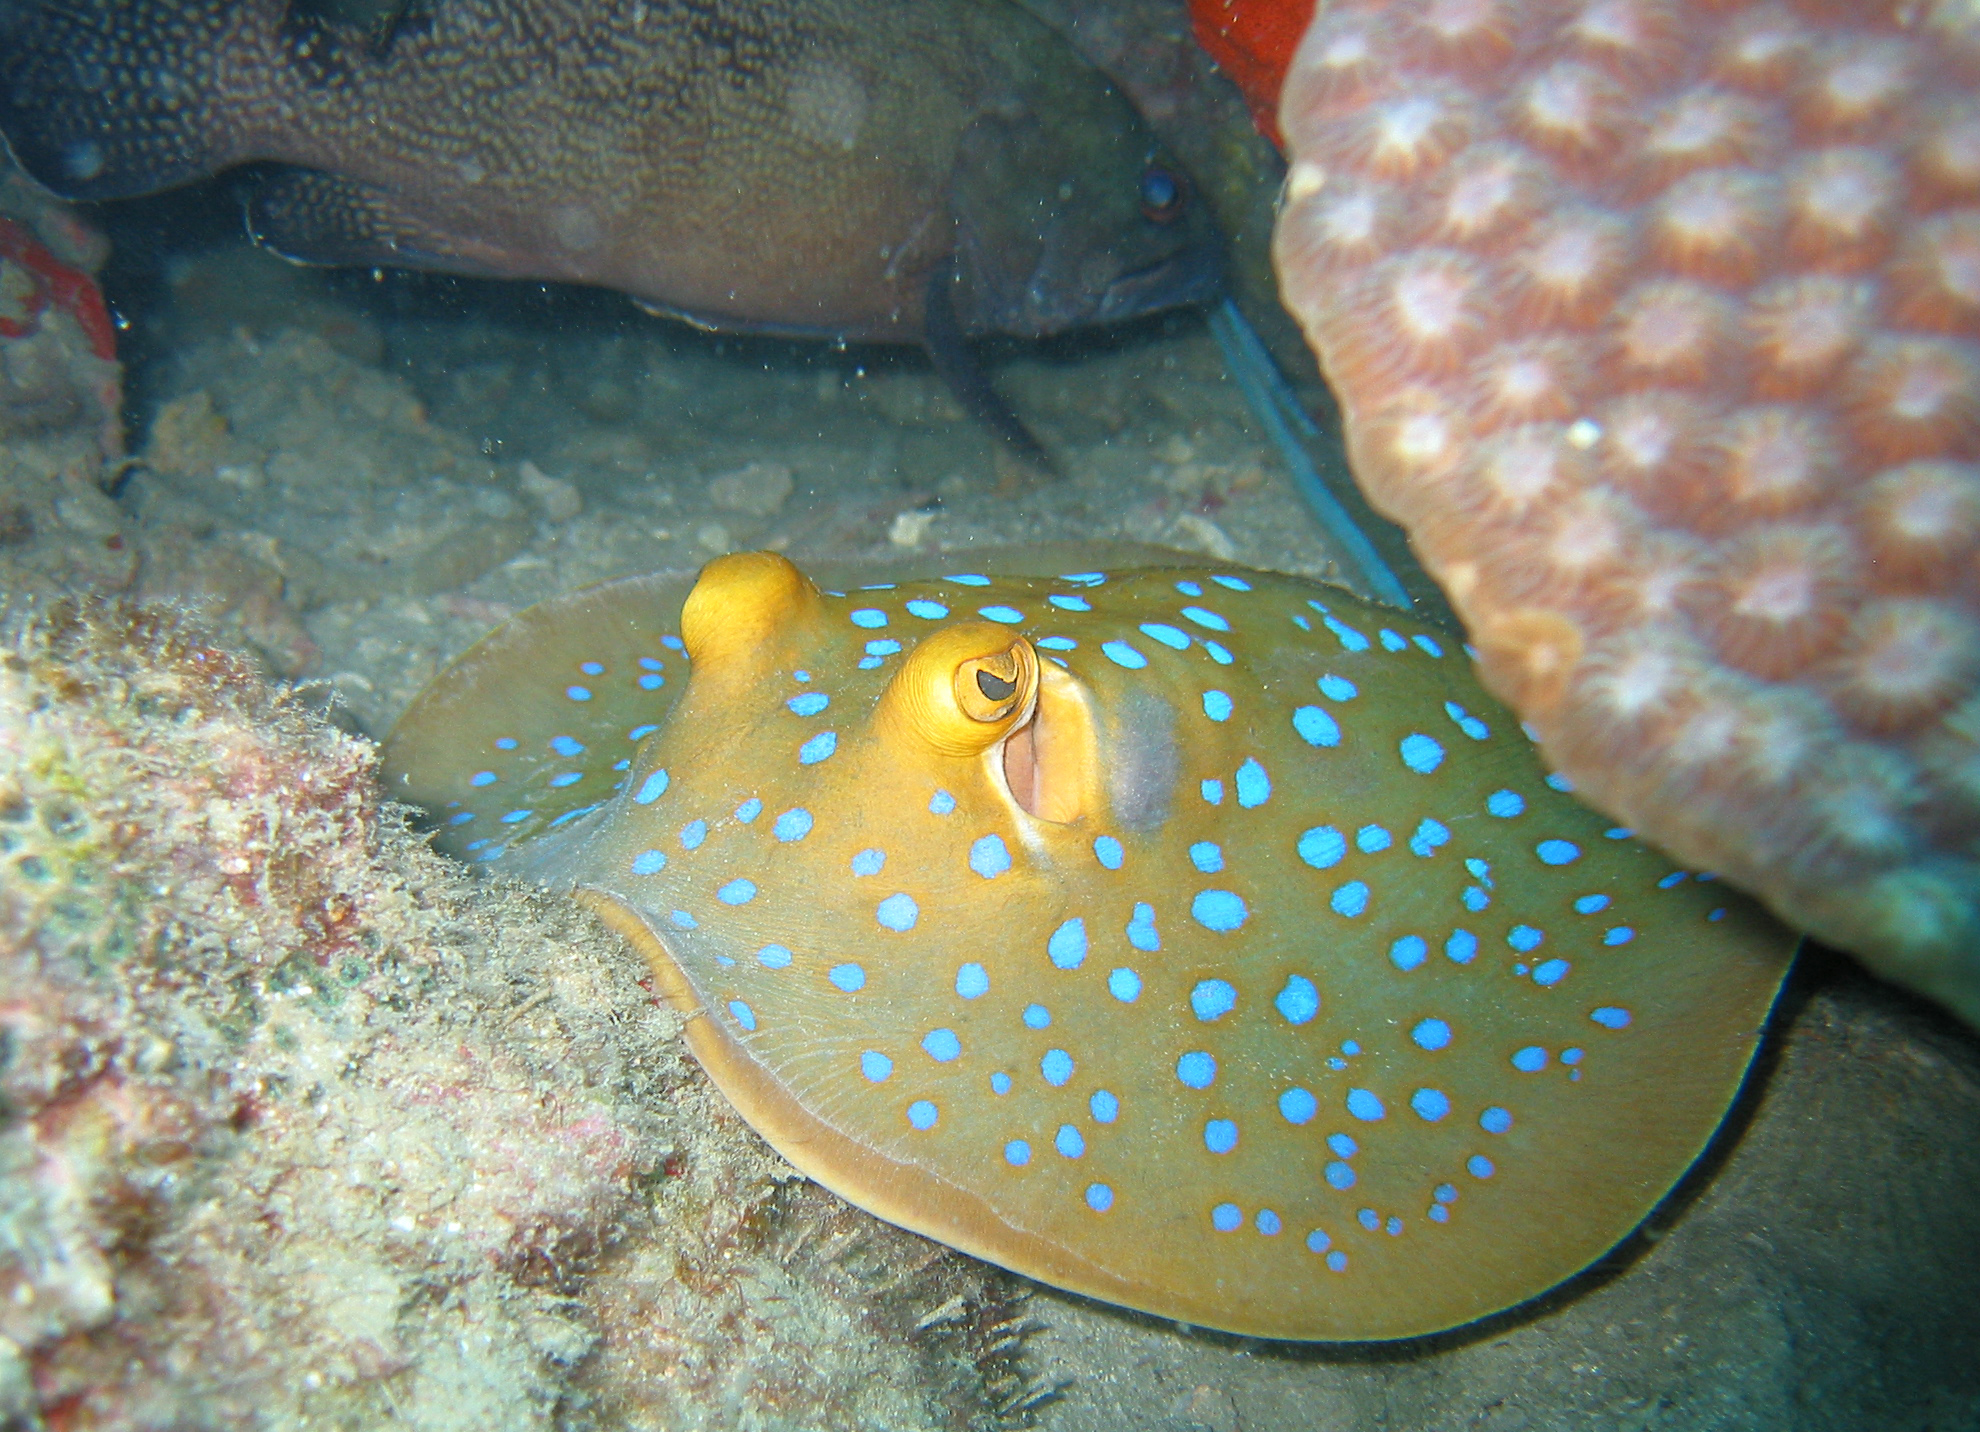 File:Blue spotted stingray.jpg - Wikimedia Commons